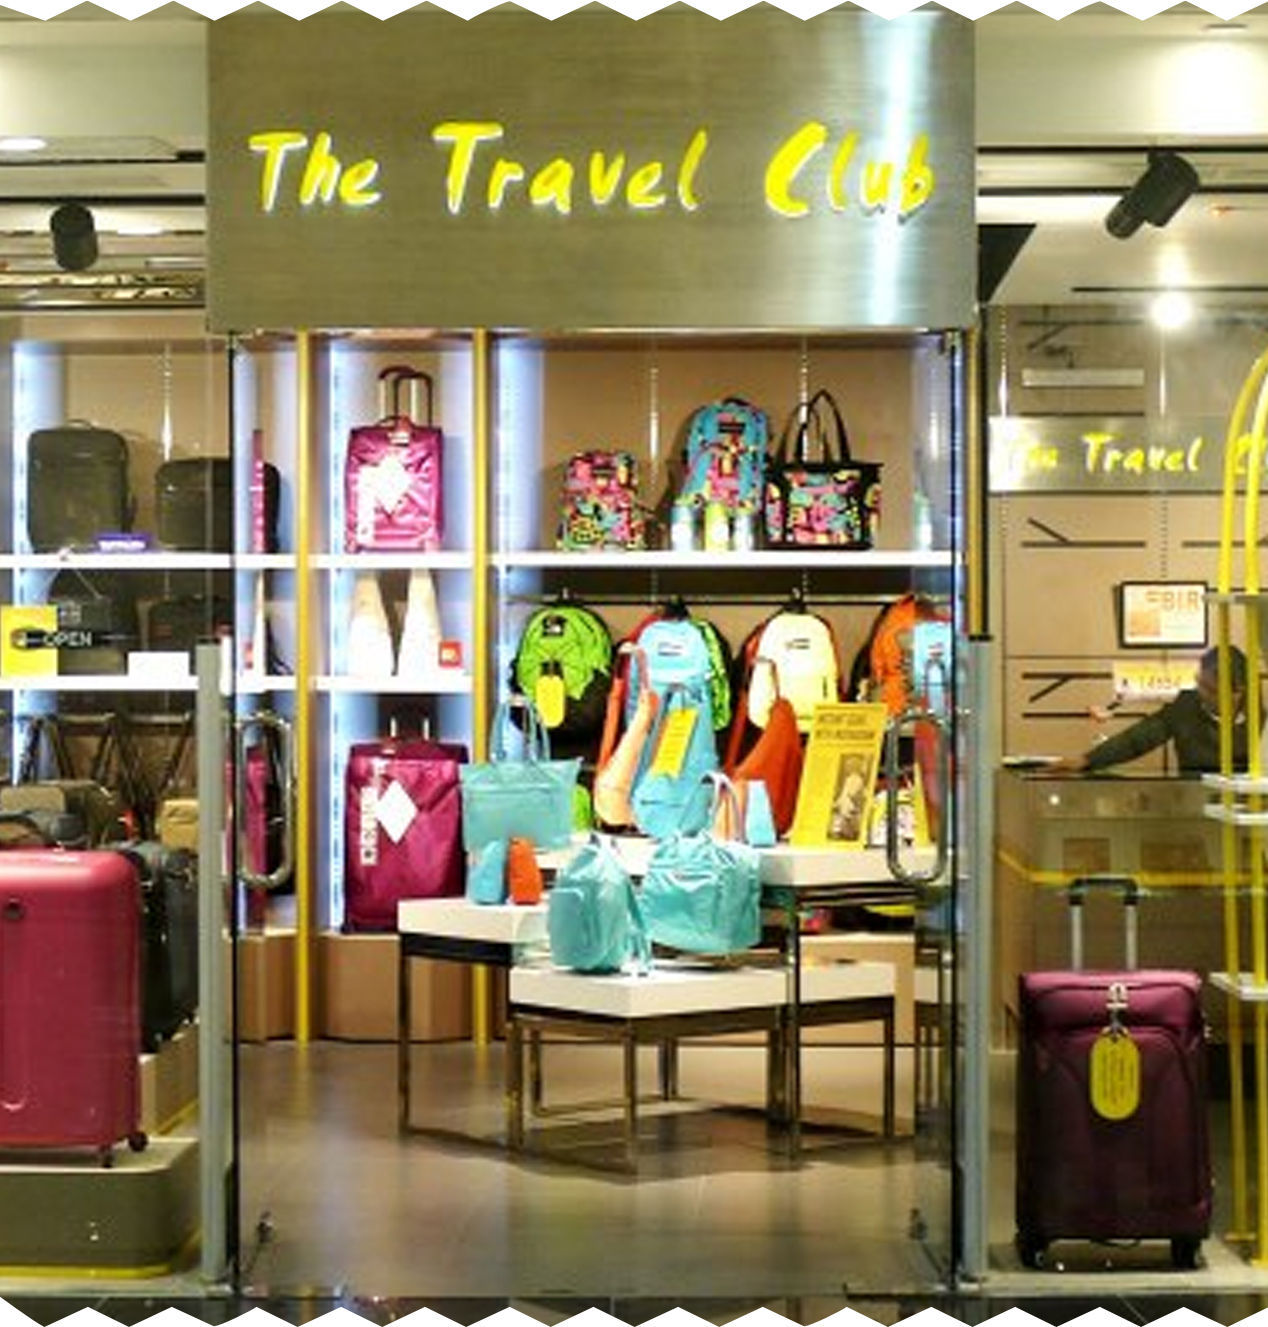 8 stores for travelers photo (8)